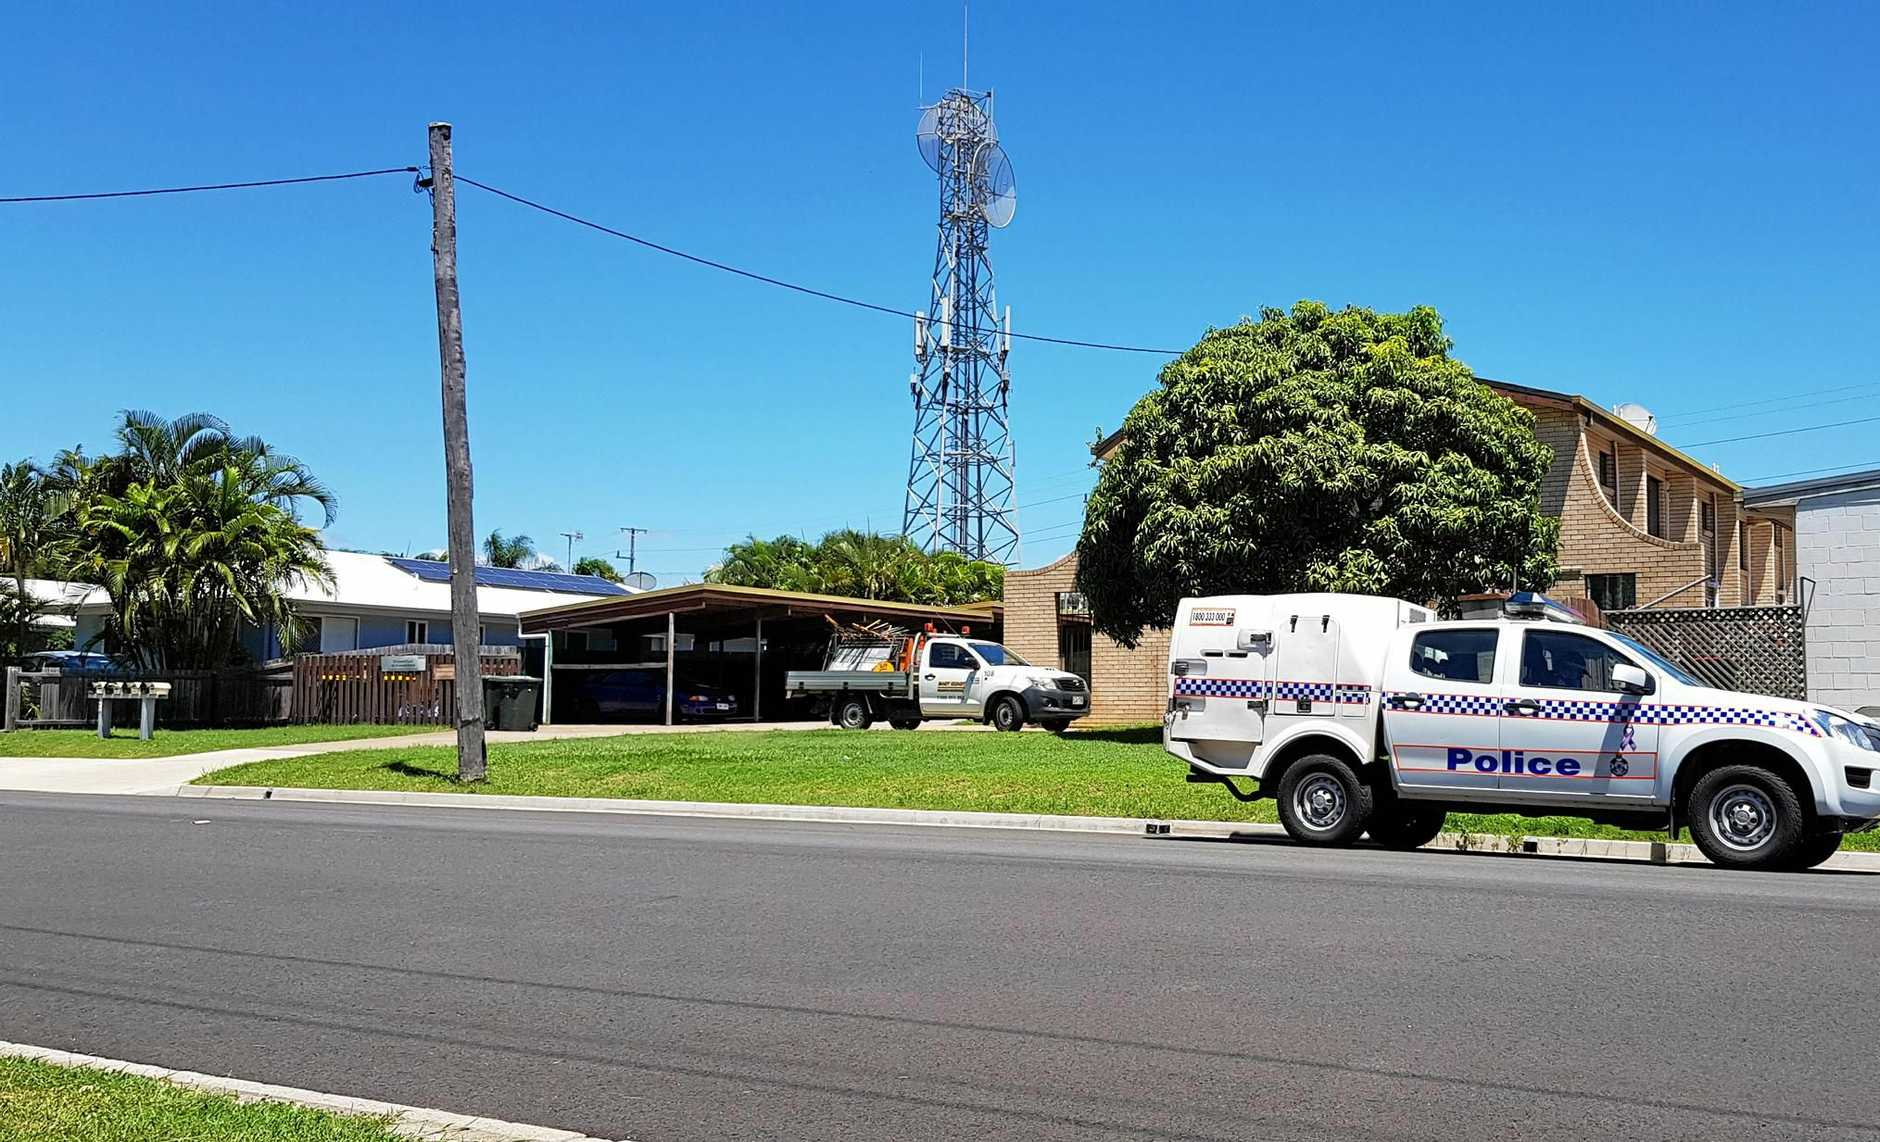 POLE POSITION: A police wagon sits outside the apartment complex at Barney Point.